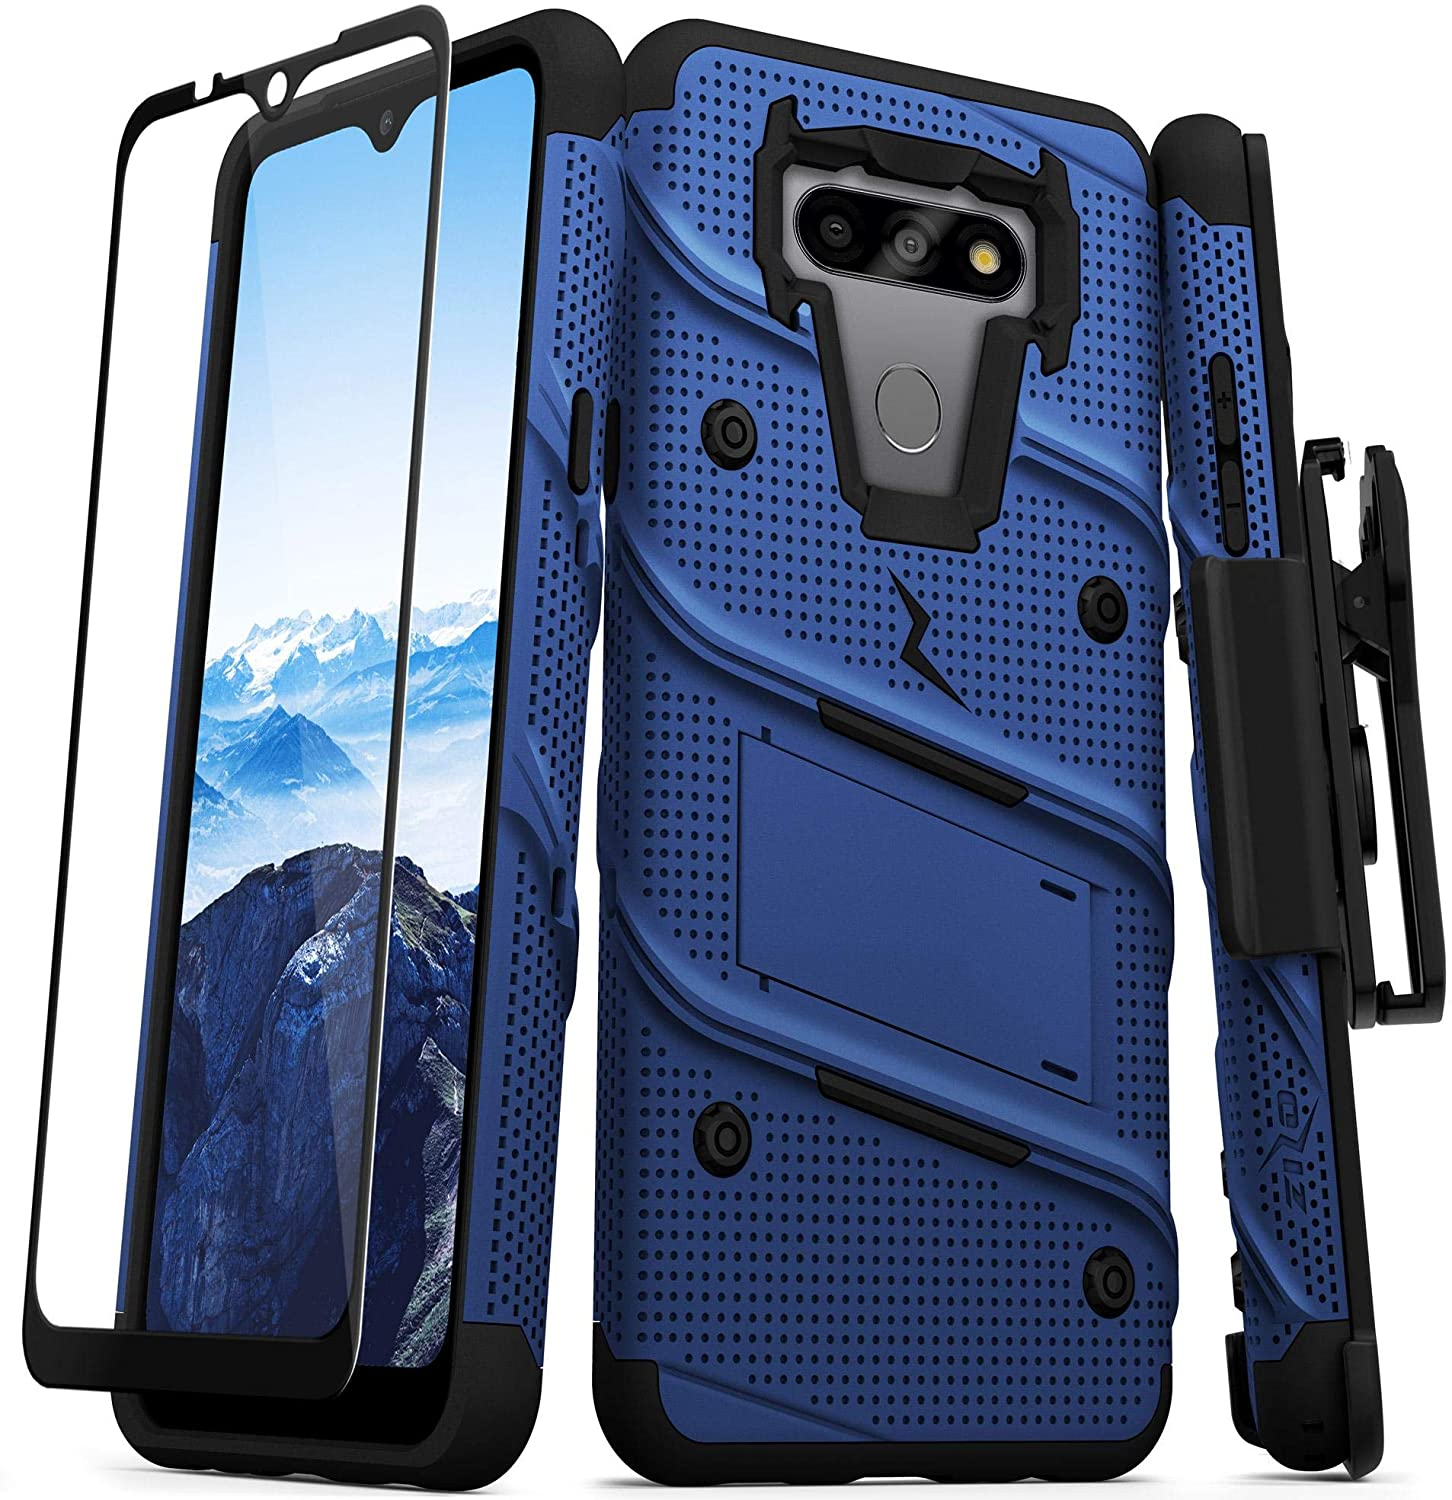 ZIZO Bolt Series for LG Fortune 3 Case with Screen Protector Kickstand Holster Lanyard - Blue & Black